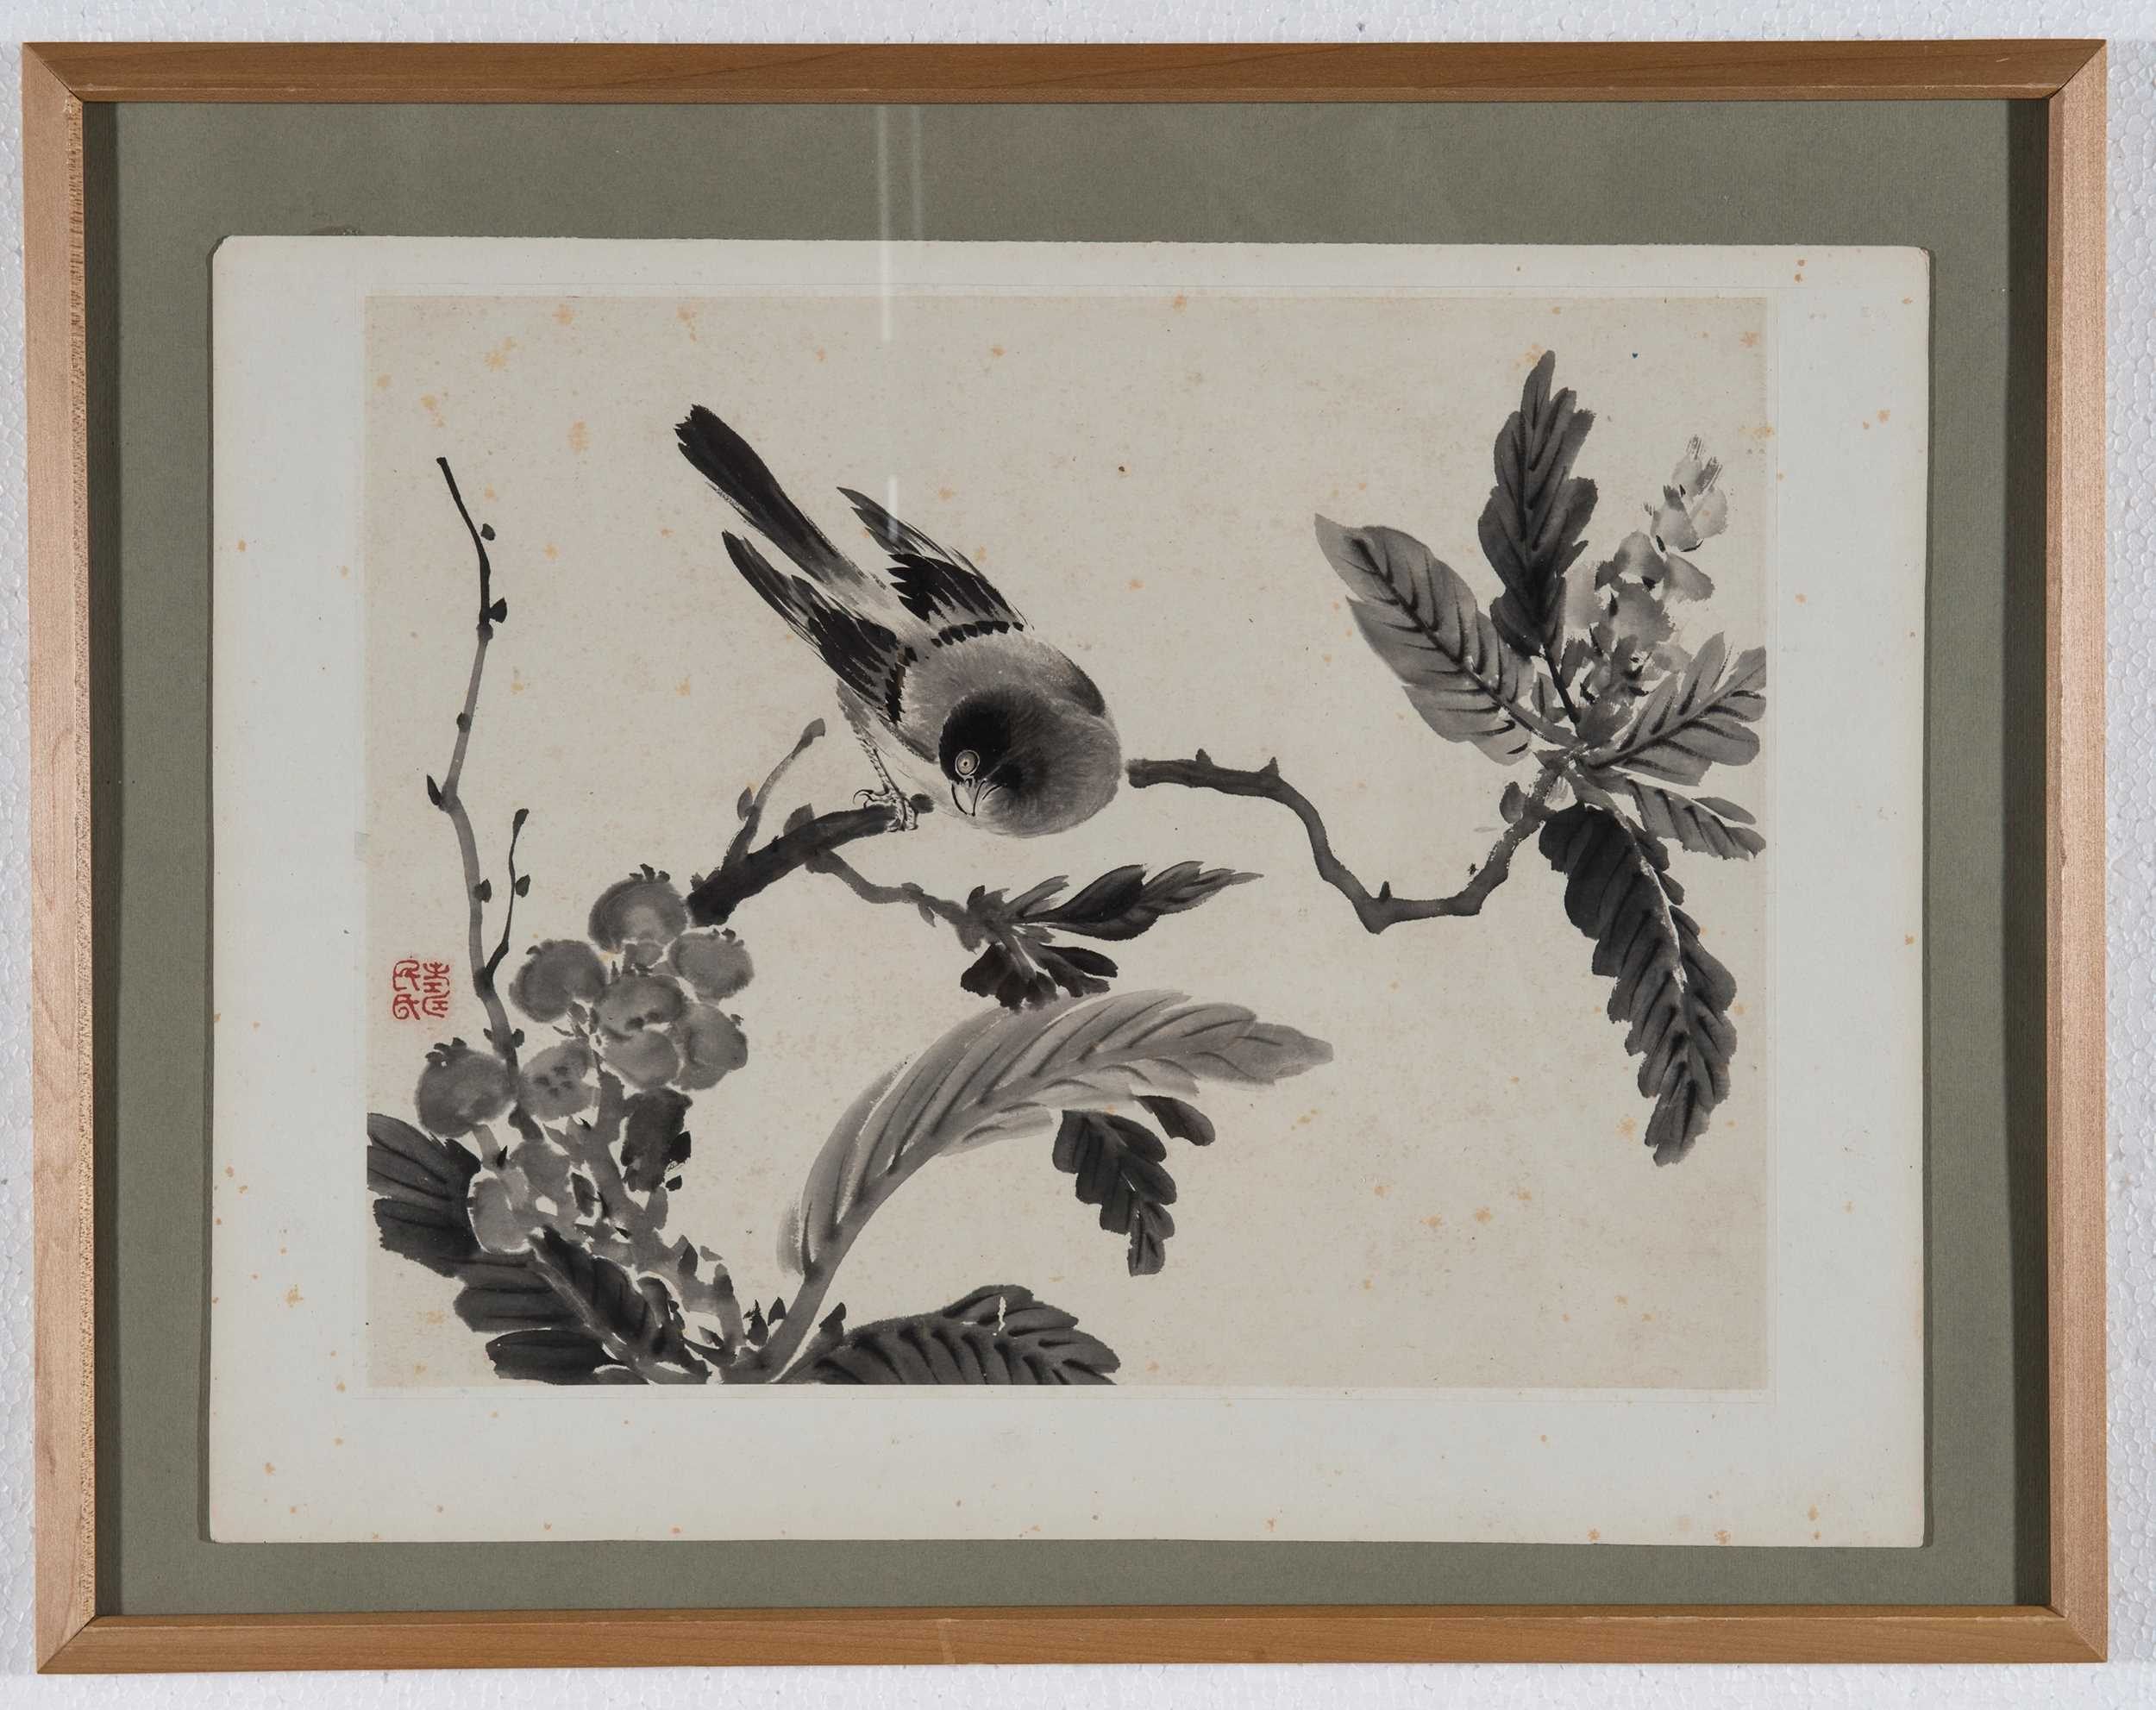 A CHINESE ORIGINAL PRINT OF A BIRD ON A BRANCH, 20TH CENTURY